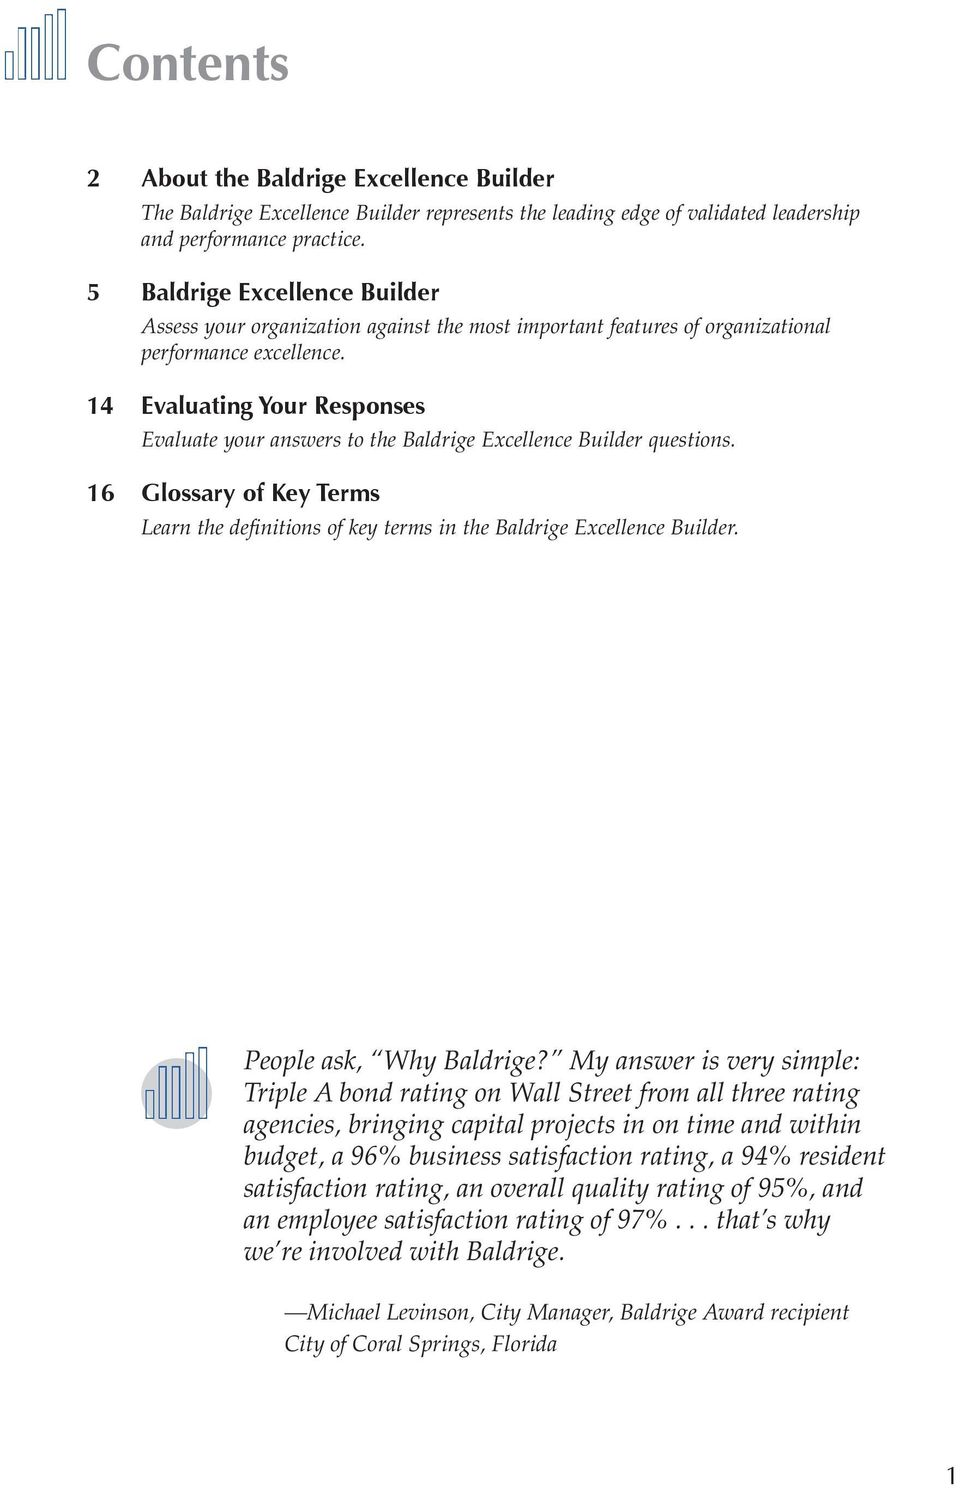 14 Evaluating Your Responses Evaluate your answers to the Baldrige Excellence Builder questions. 16 Glossary of Key Terms Learn the definitions of key terms in the Baldrige Excellence Builder.